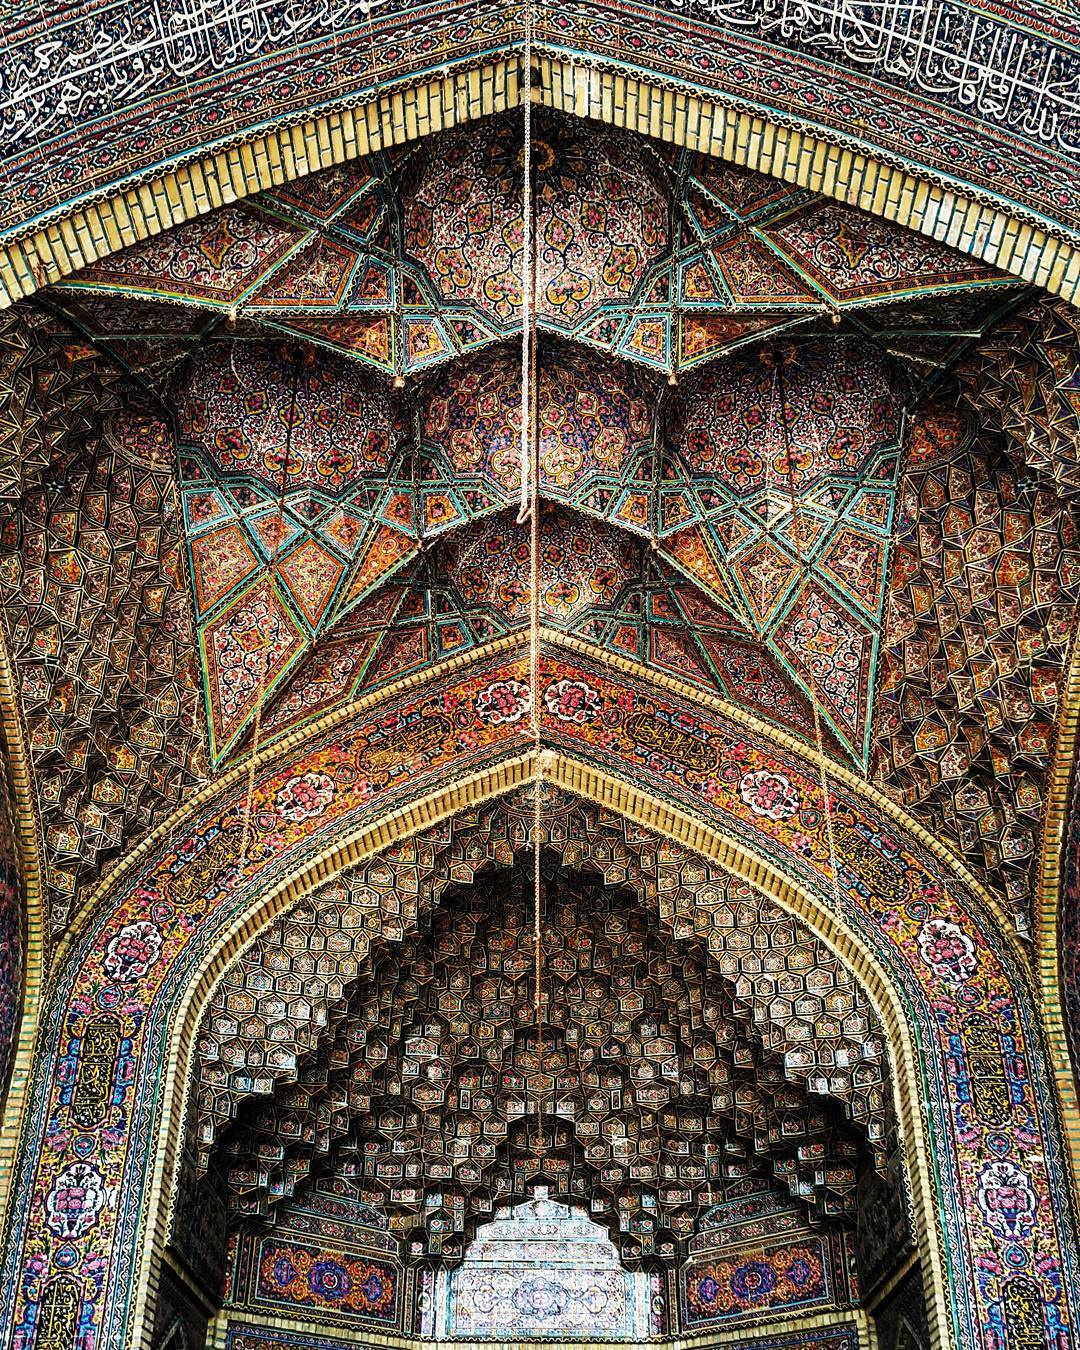 http://doorofperception.com/wp-content/uploads/doorofperception.com-islamic_architecture-iranian_mosque_celings-43.jpg